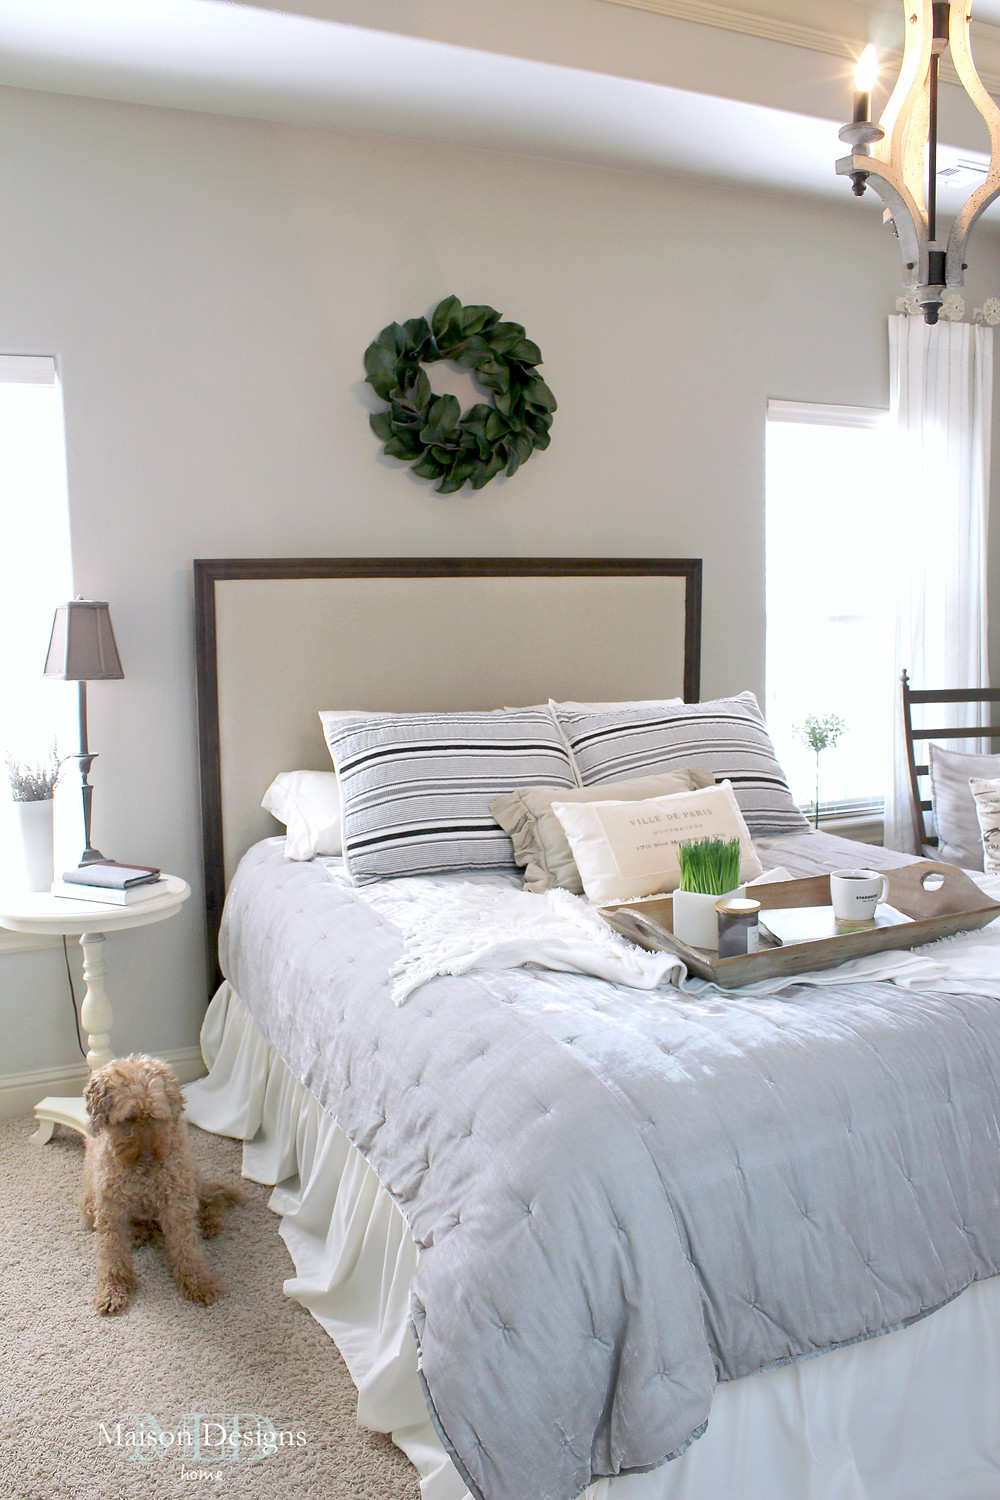 French Country Bedroom Inspiration-Maison Designs Home